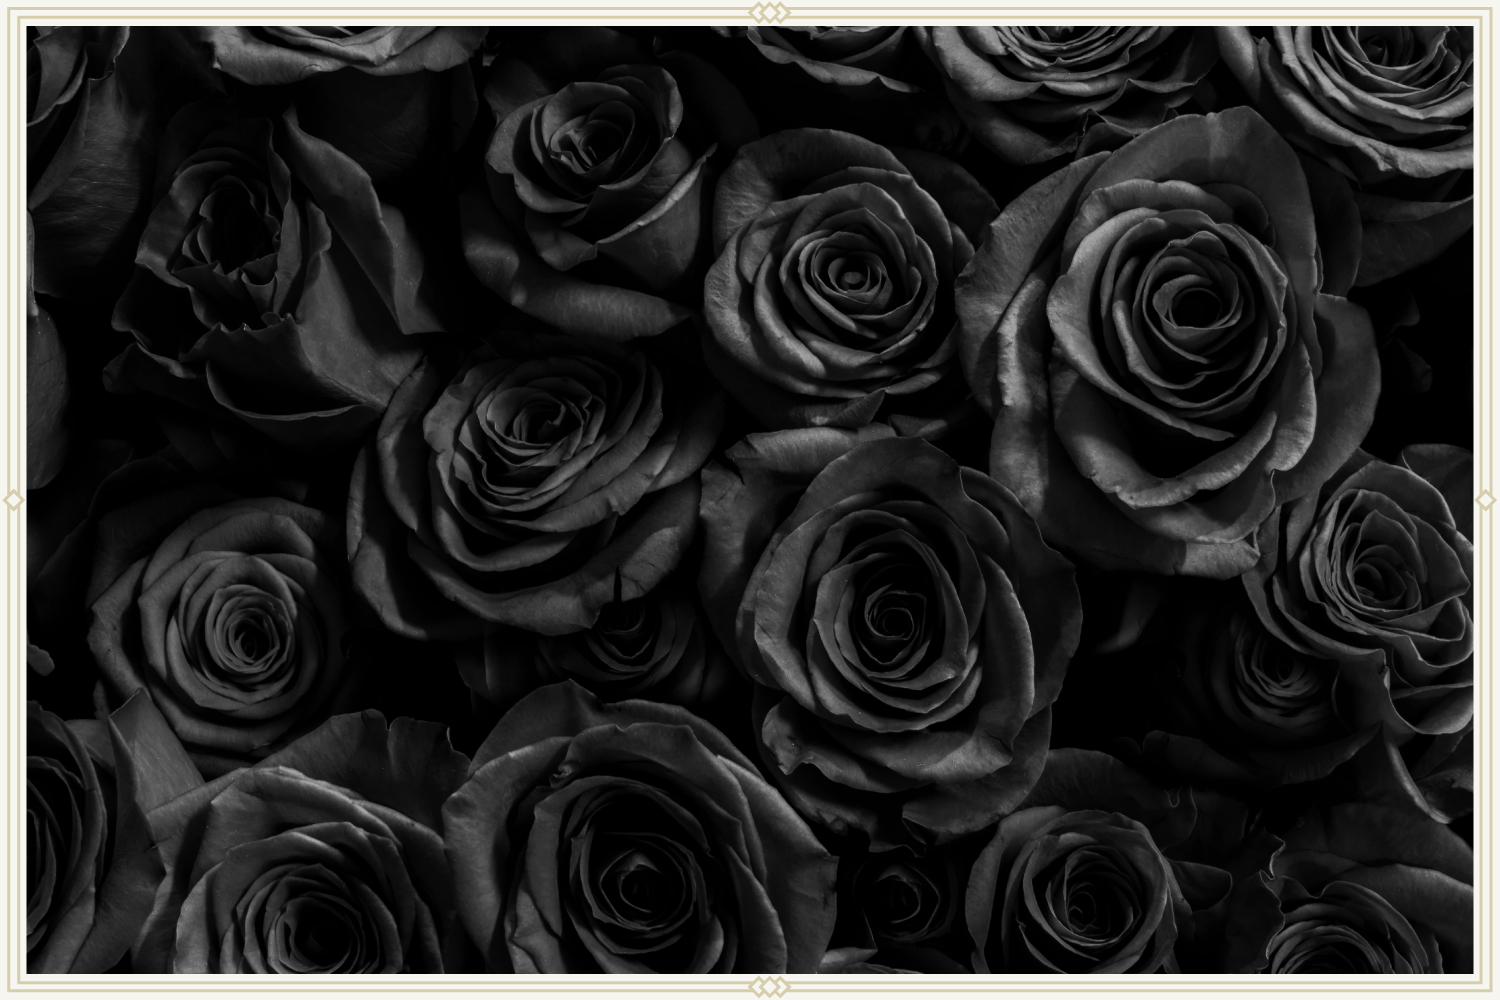 close-up shot of black roses